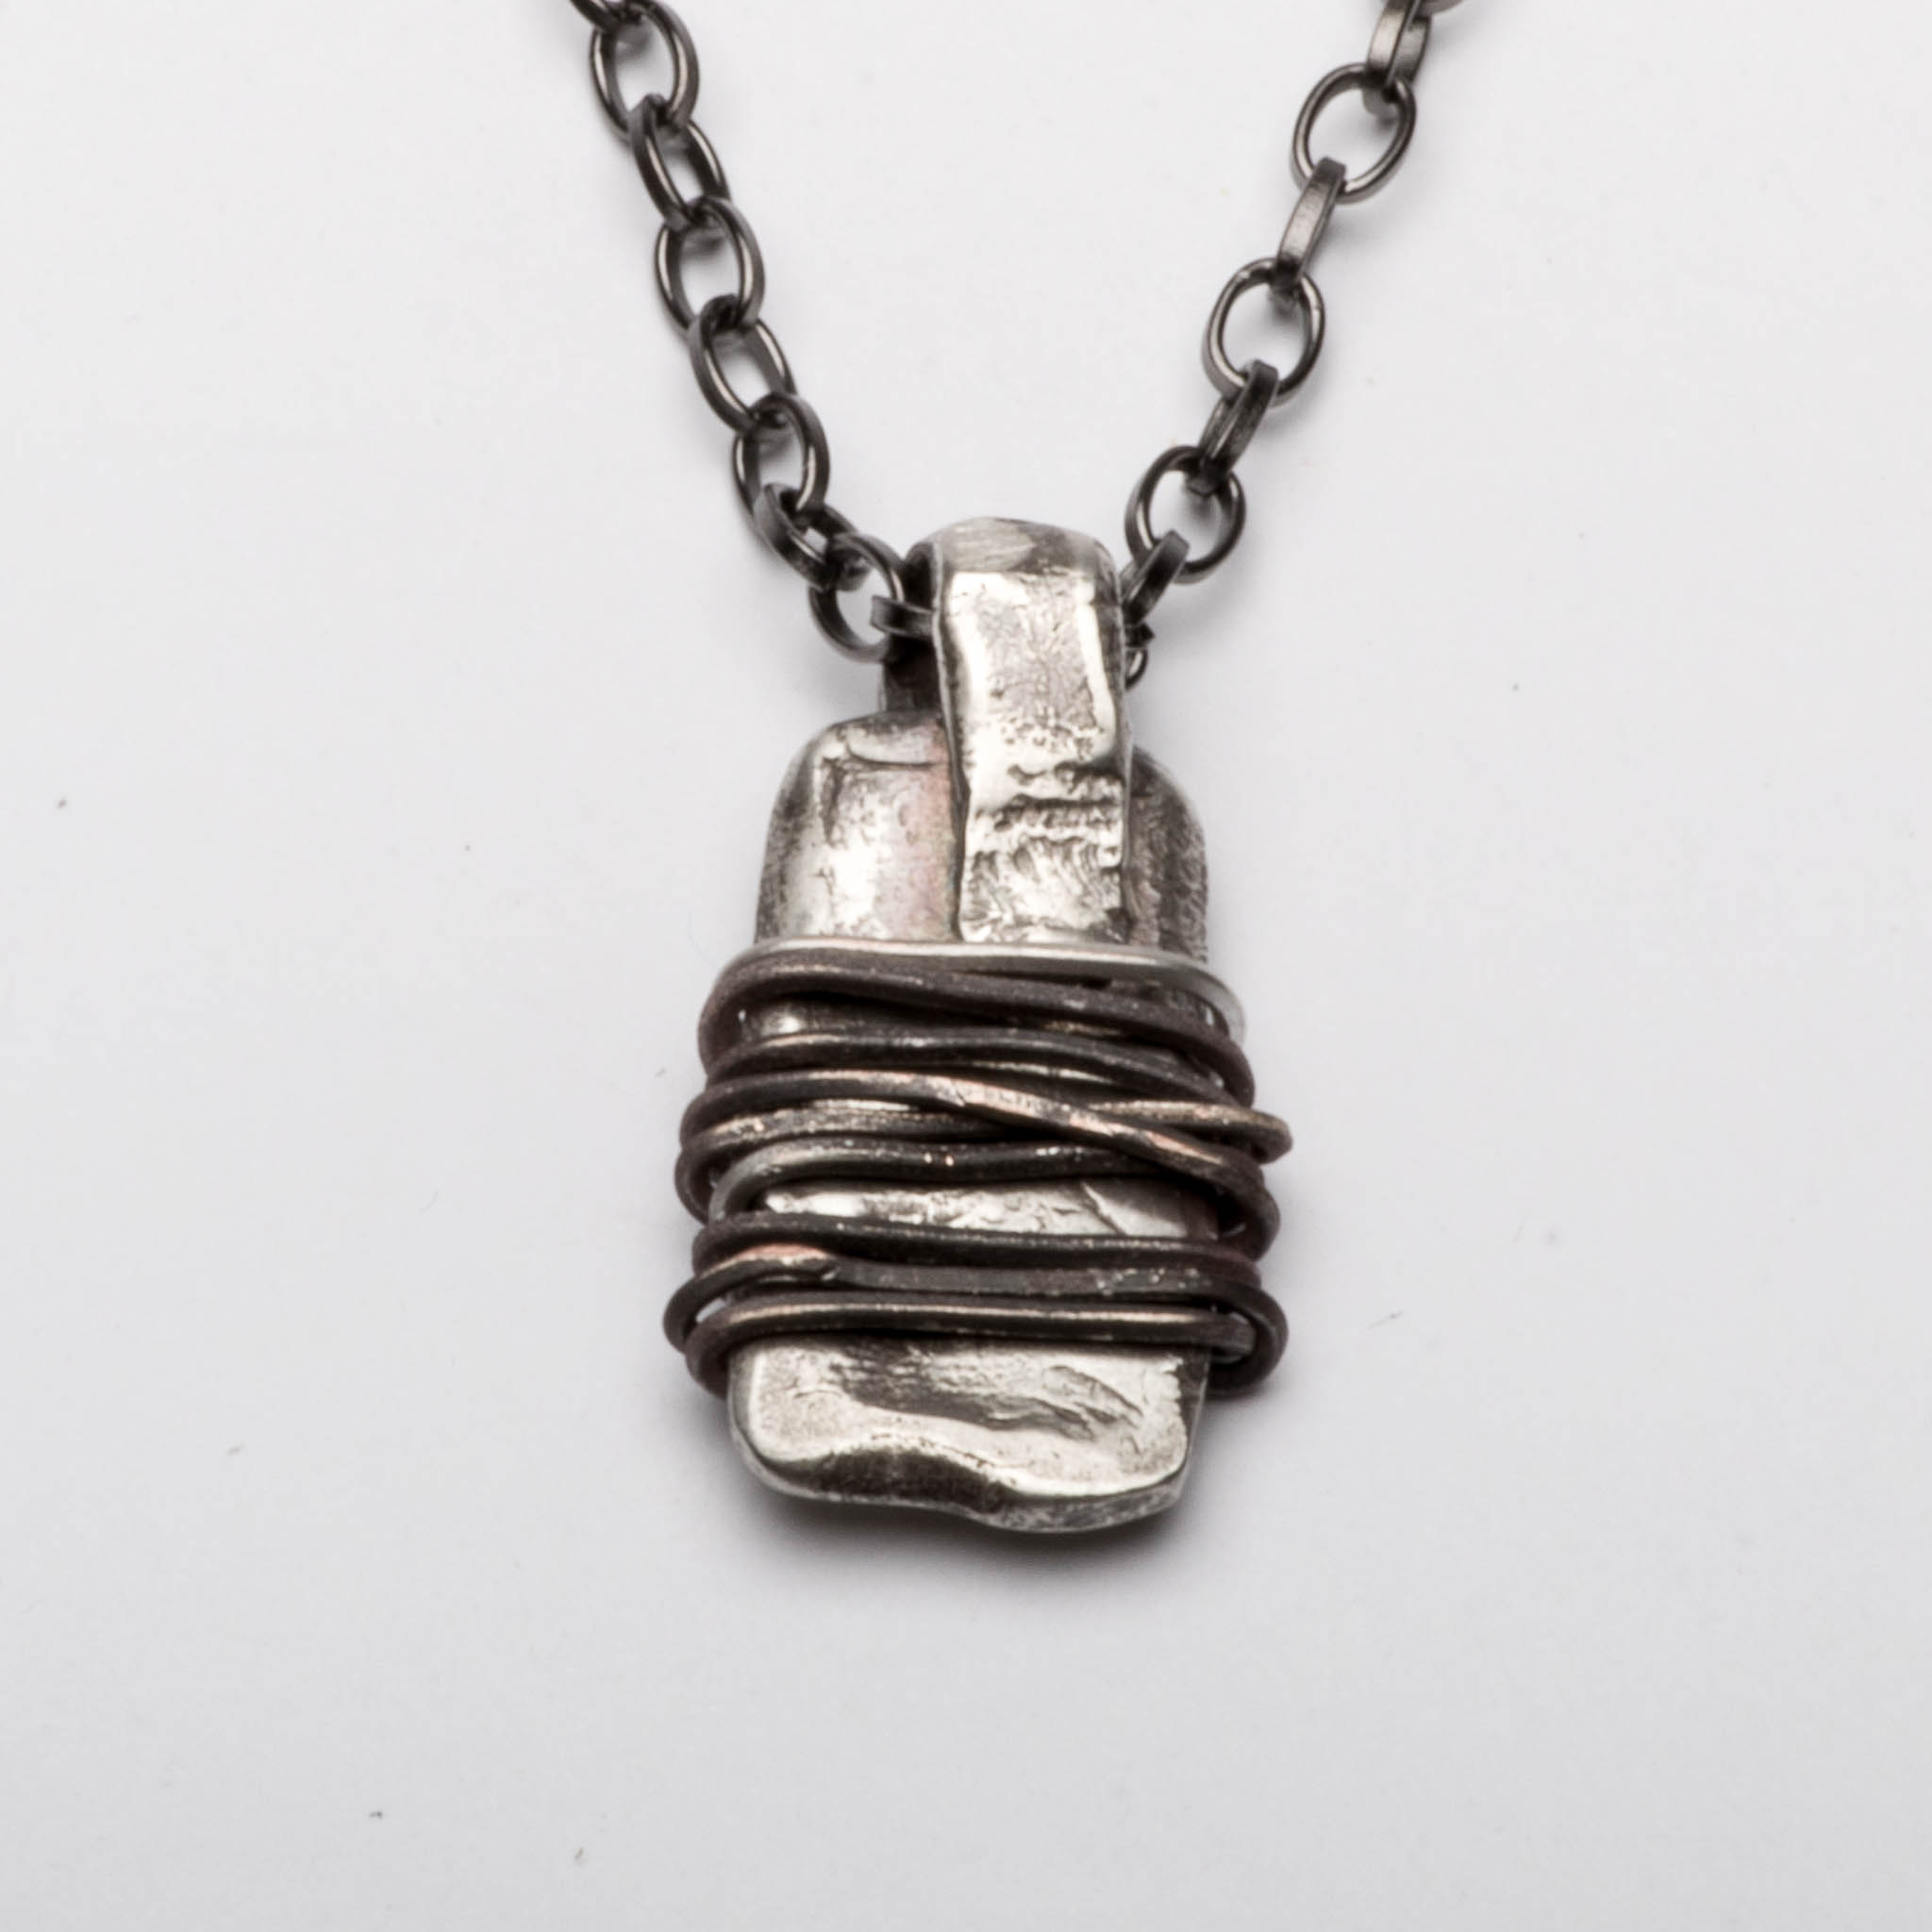 Amulet Warding Off Sterling Silver Pendant Necklace Jewelry